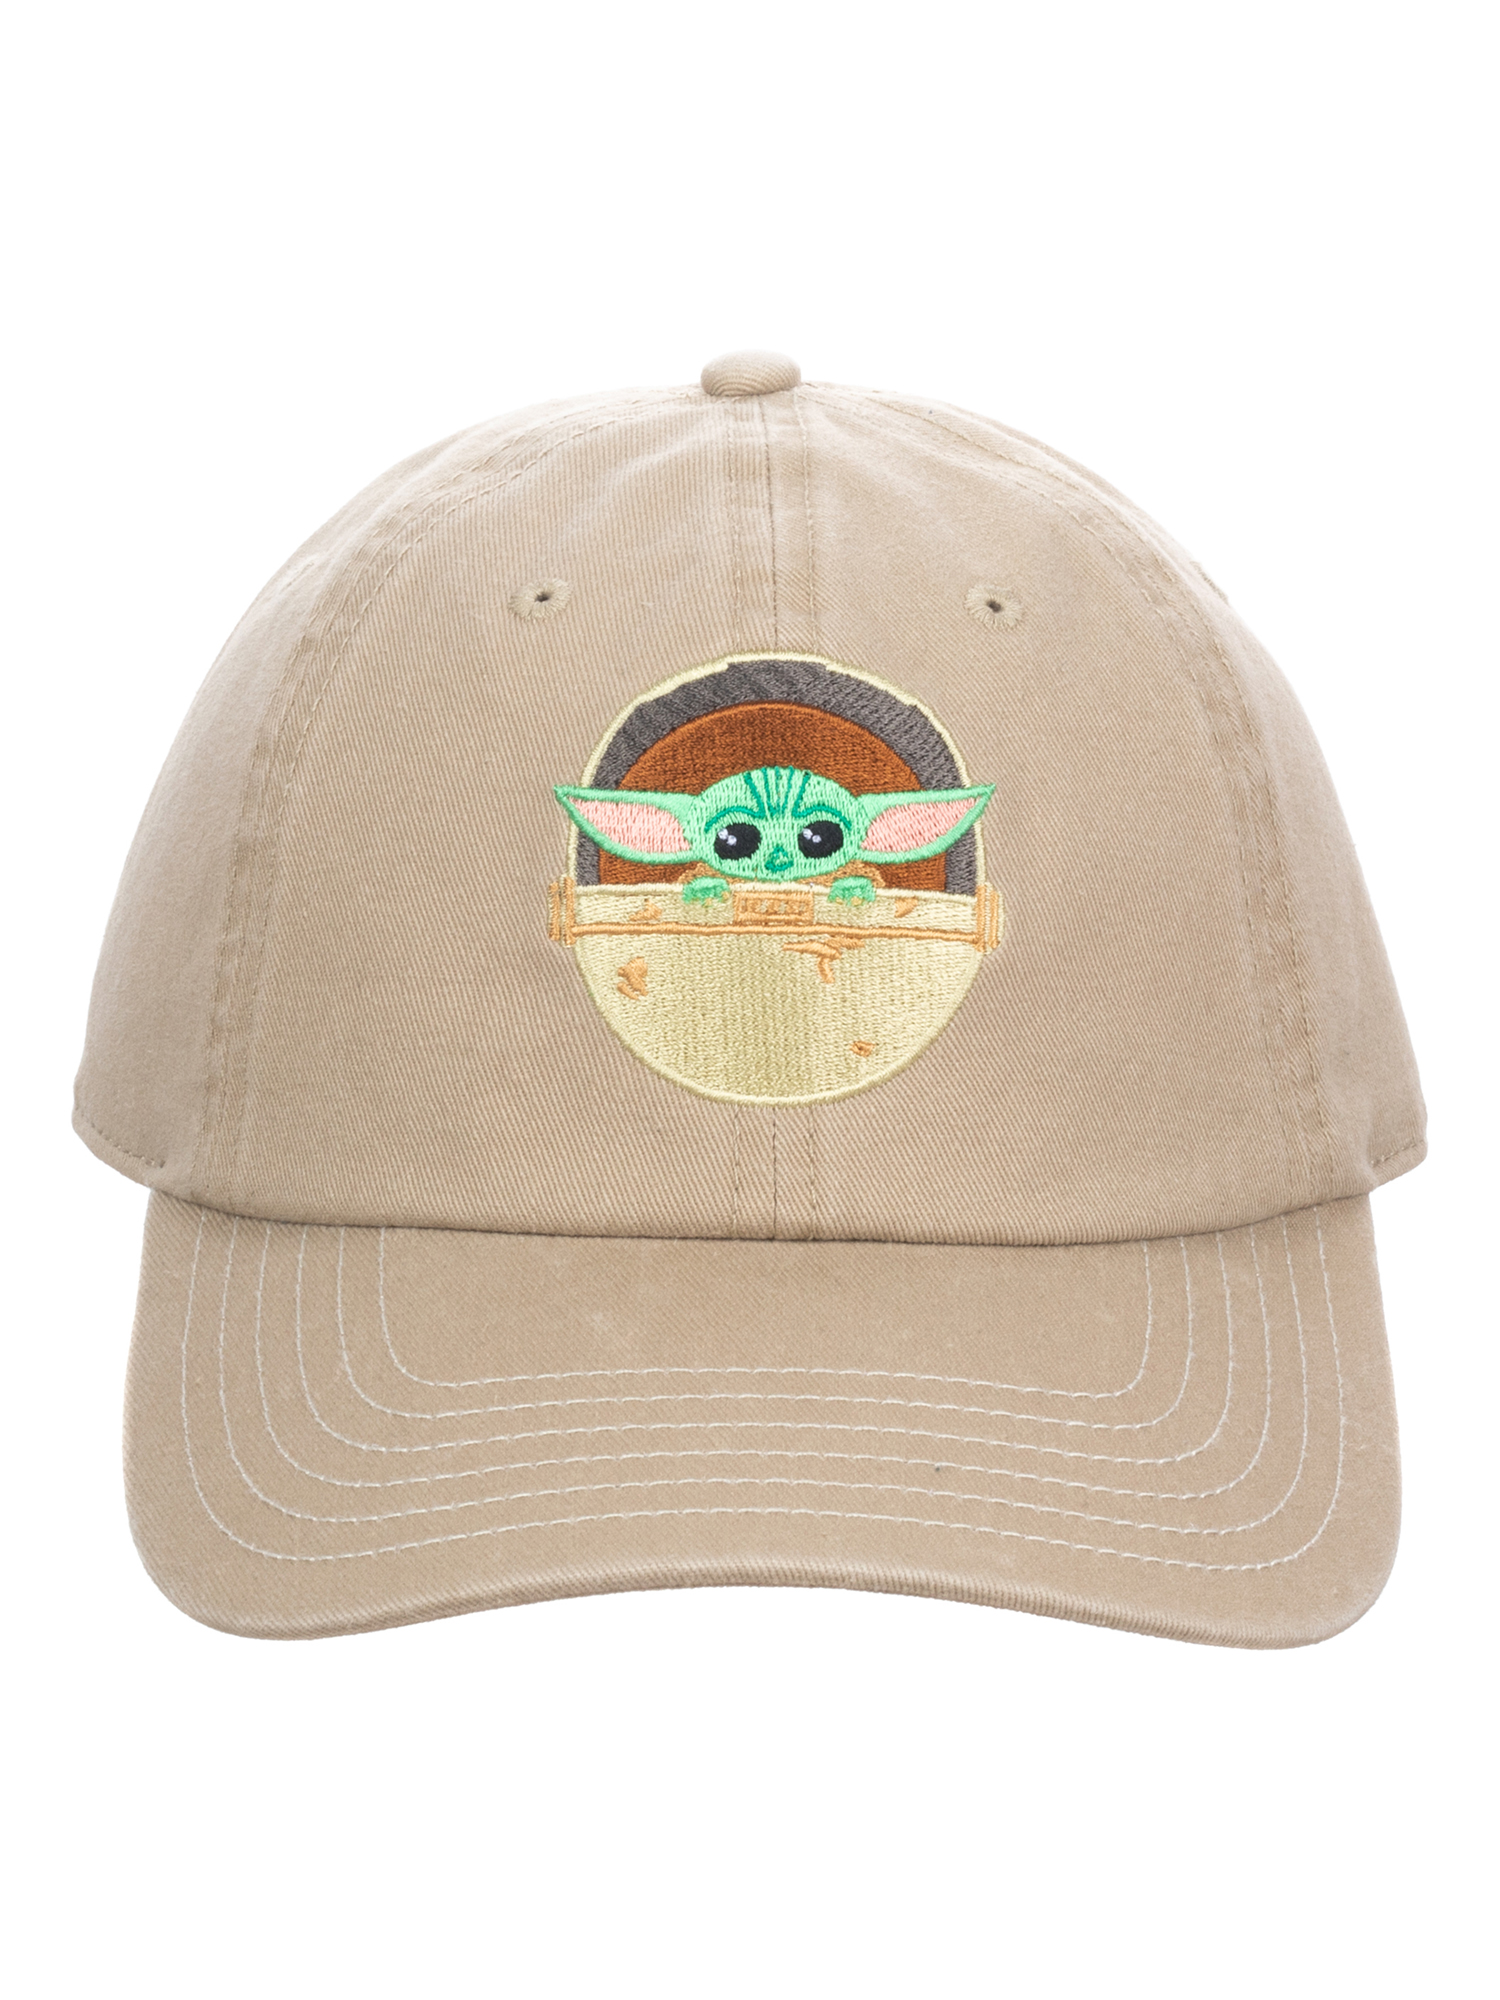 TM The Child Khaki Hat 1